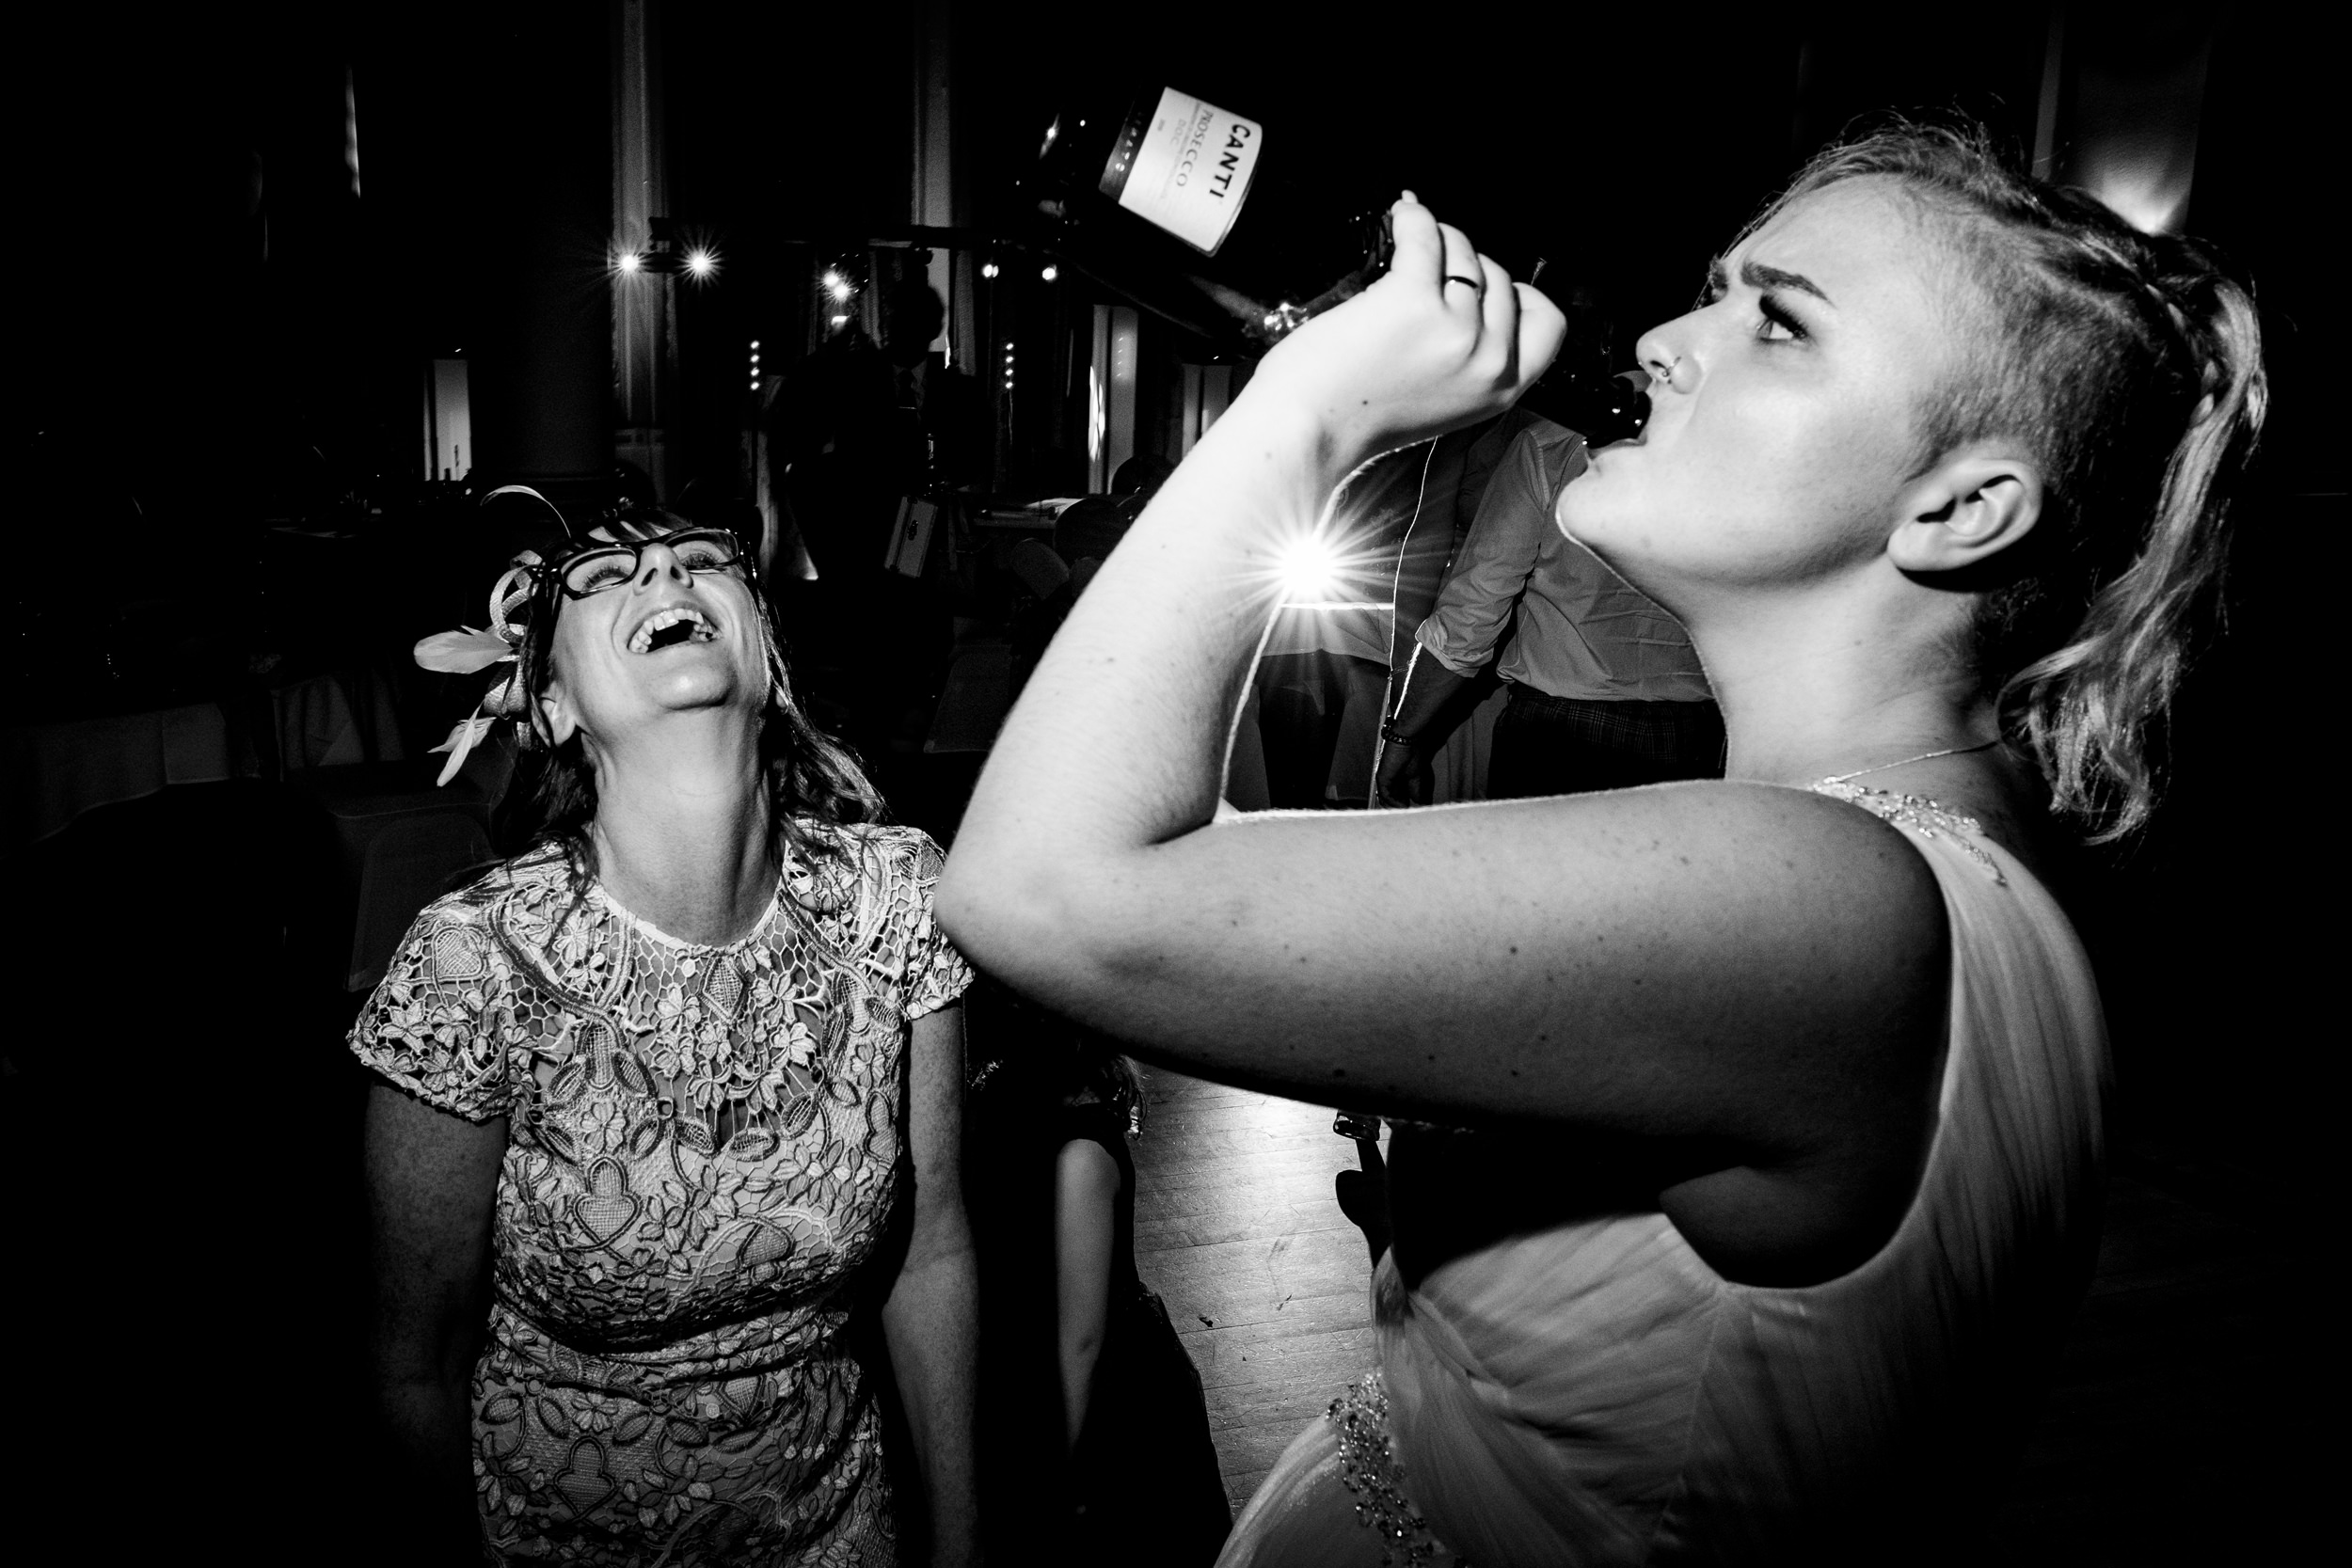 bride drinking wine from bottle. grand hotel scarborough wedding photography by emma and rich.